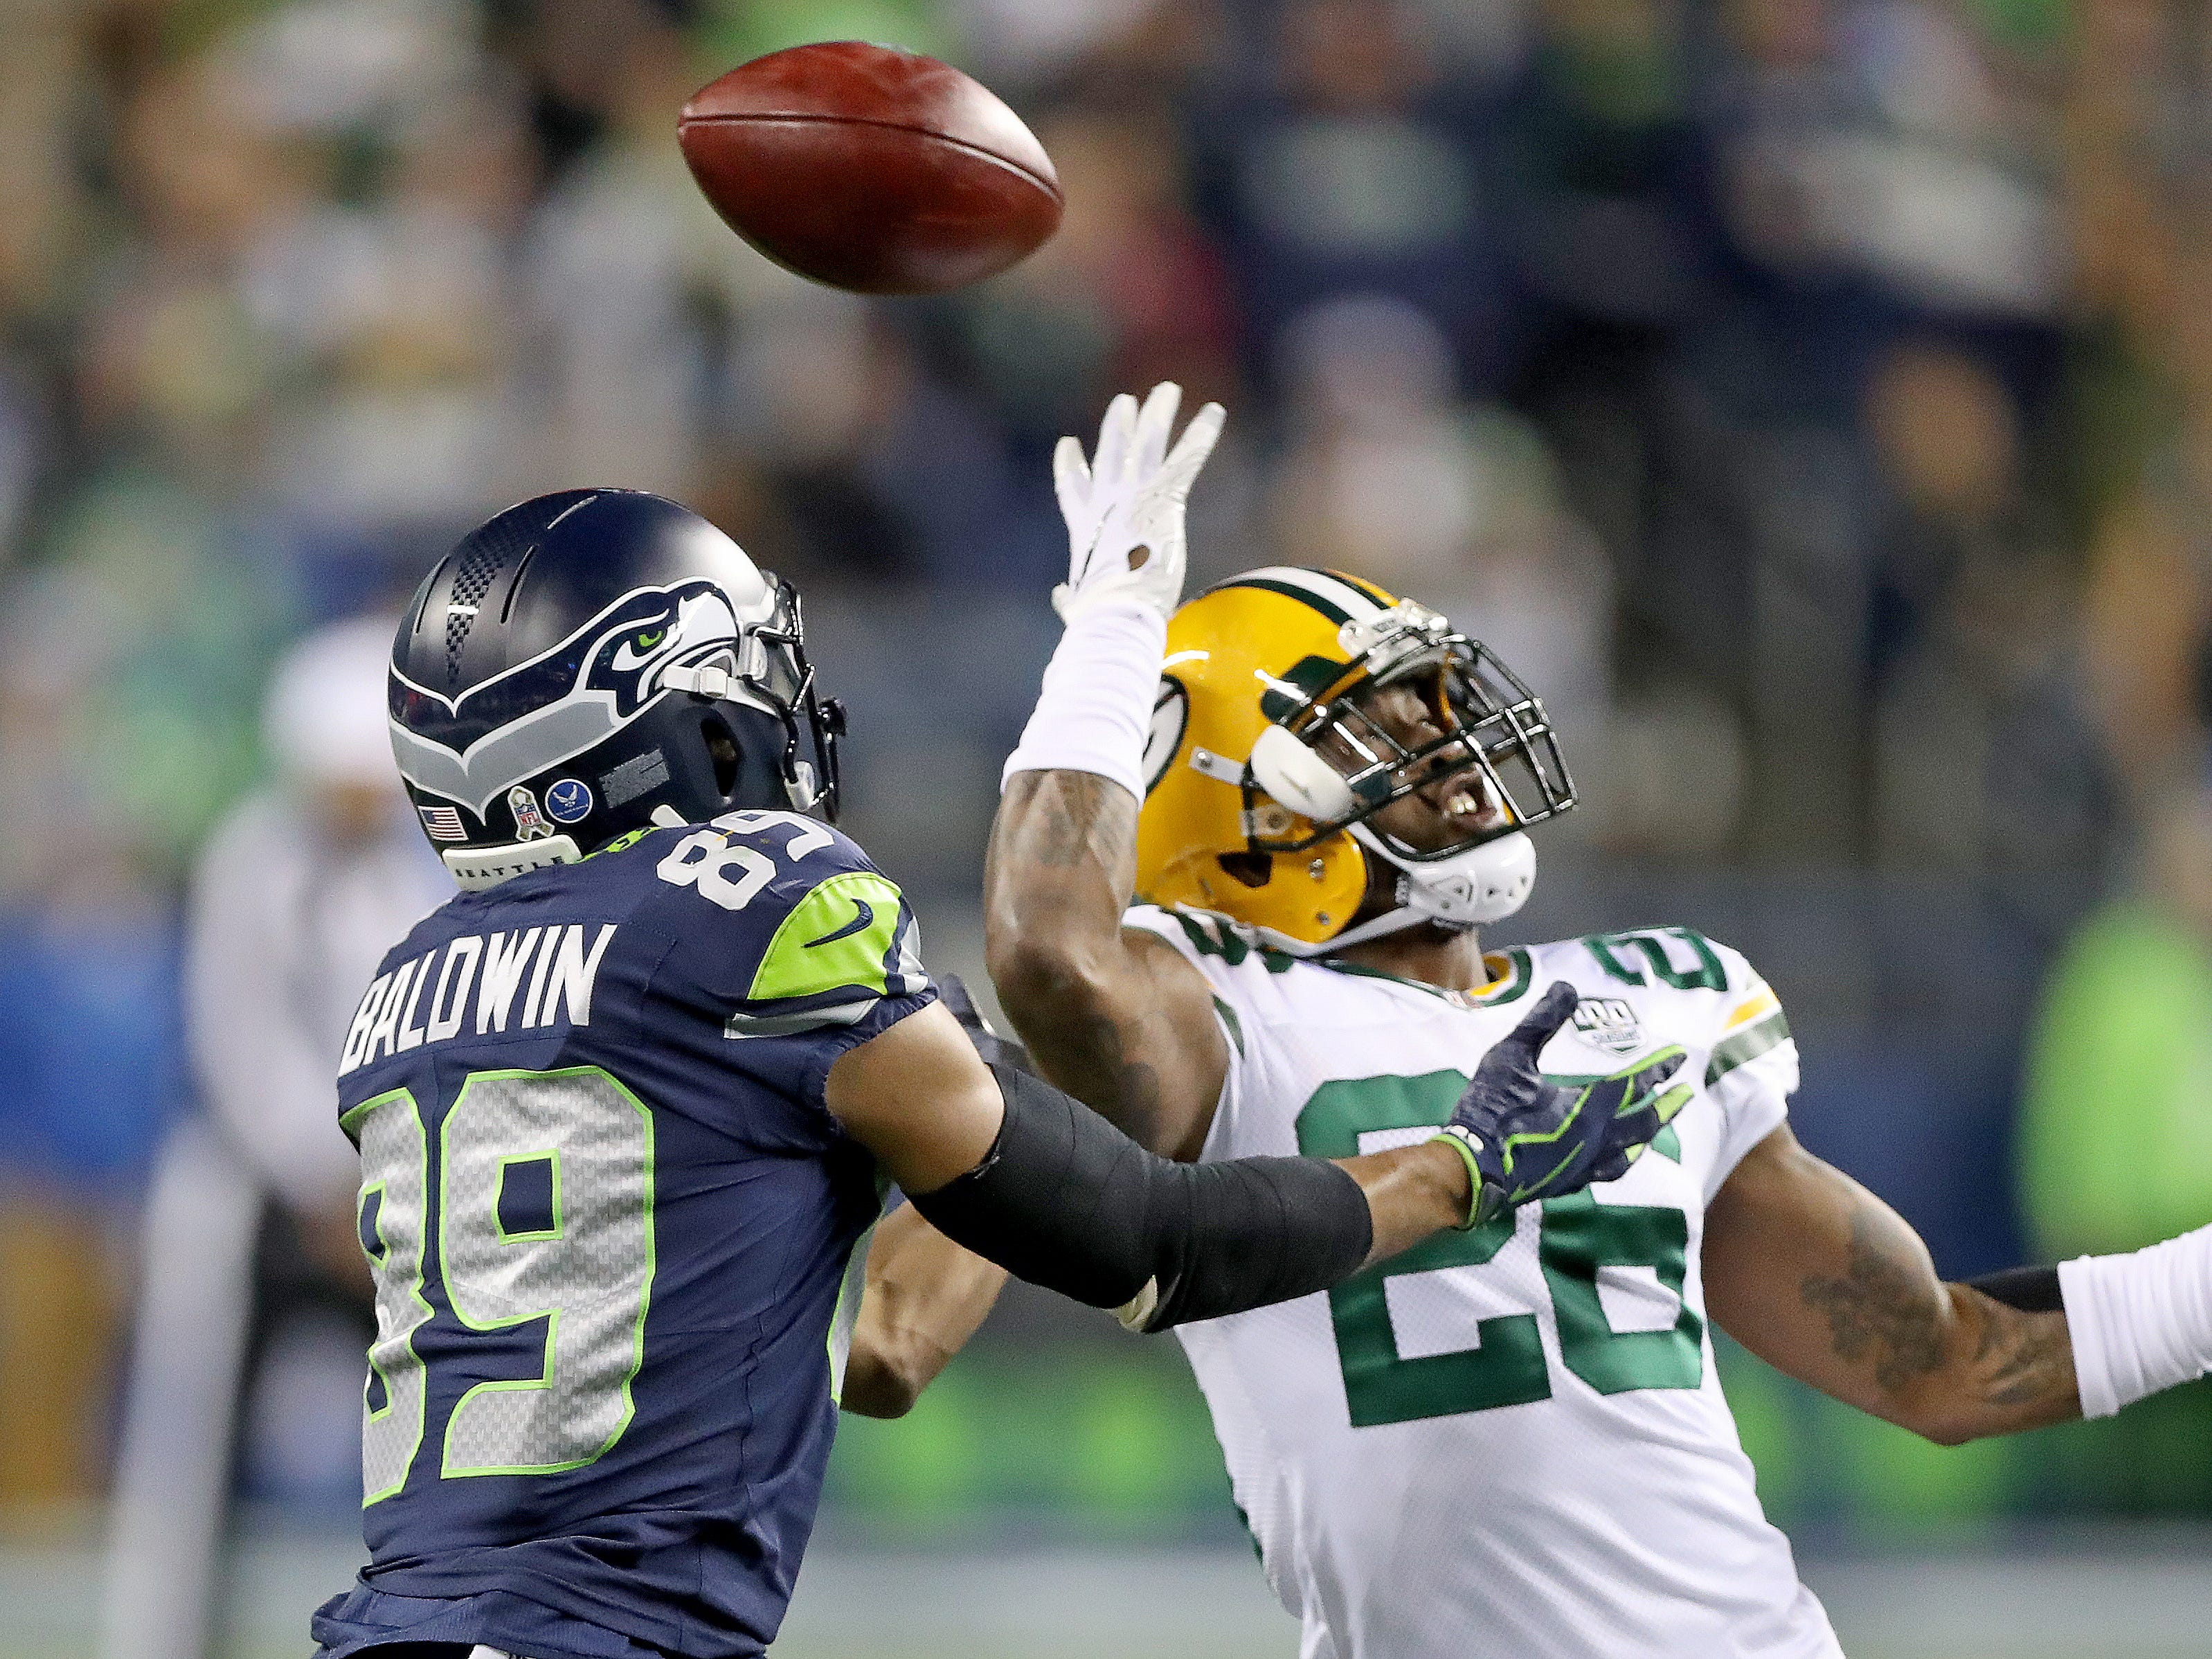 Green Bay Packers defensive back Bashaud Breeland (26) defends a pass to wide receiver Doug Baldwin (89) against the Seattle Seahawks at CenturyLink Field Thursday, November 15, 2018 in Seattle, WA. Jim Matthews/USA TODAY NETWORK-Wis